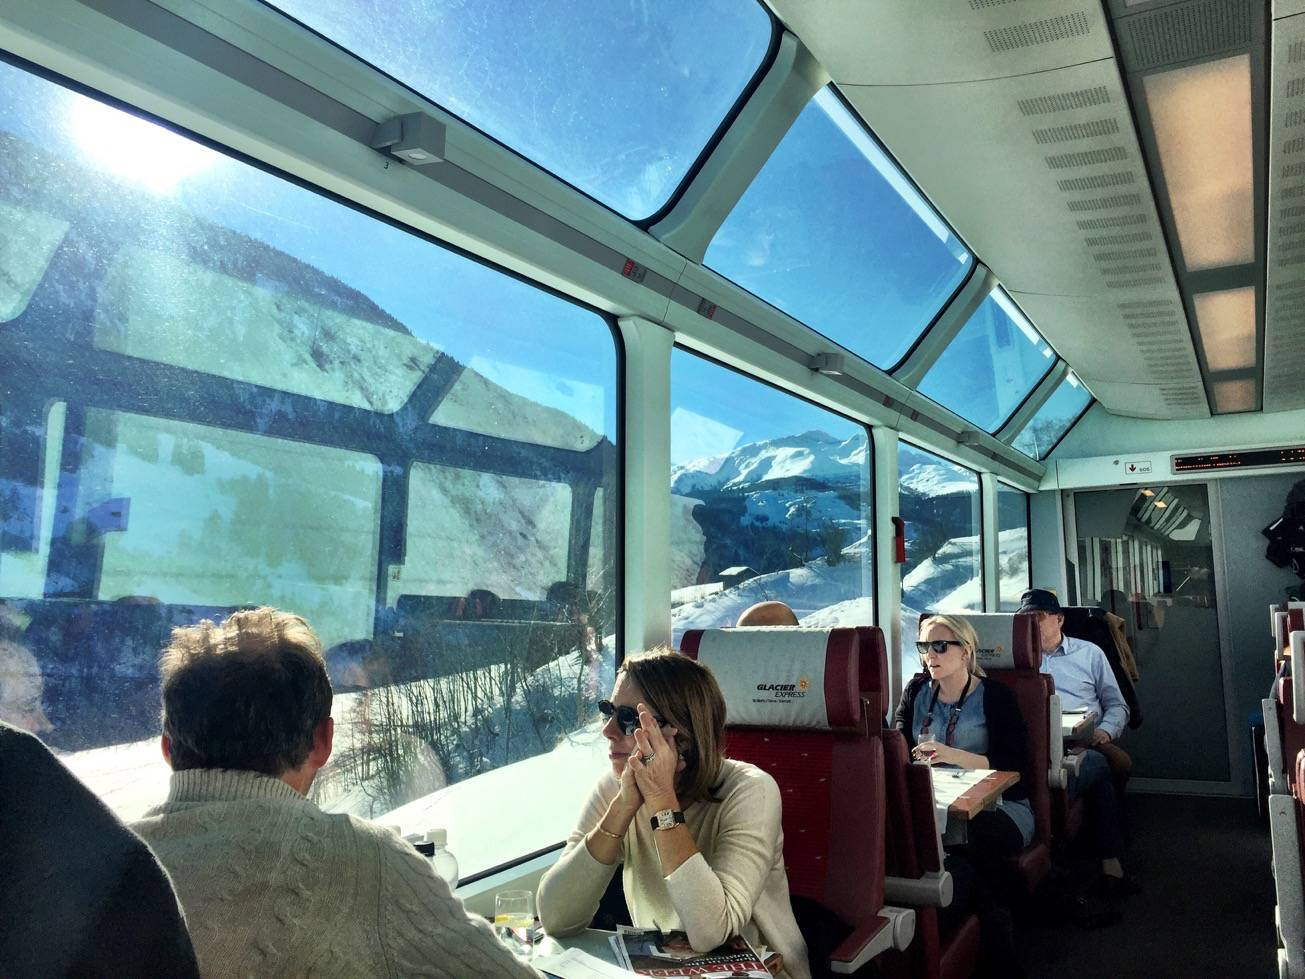 People sitting inside the Glacier Express and enjoying the view of the snowy mountains outside